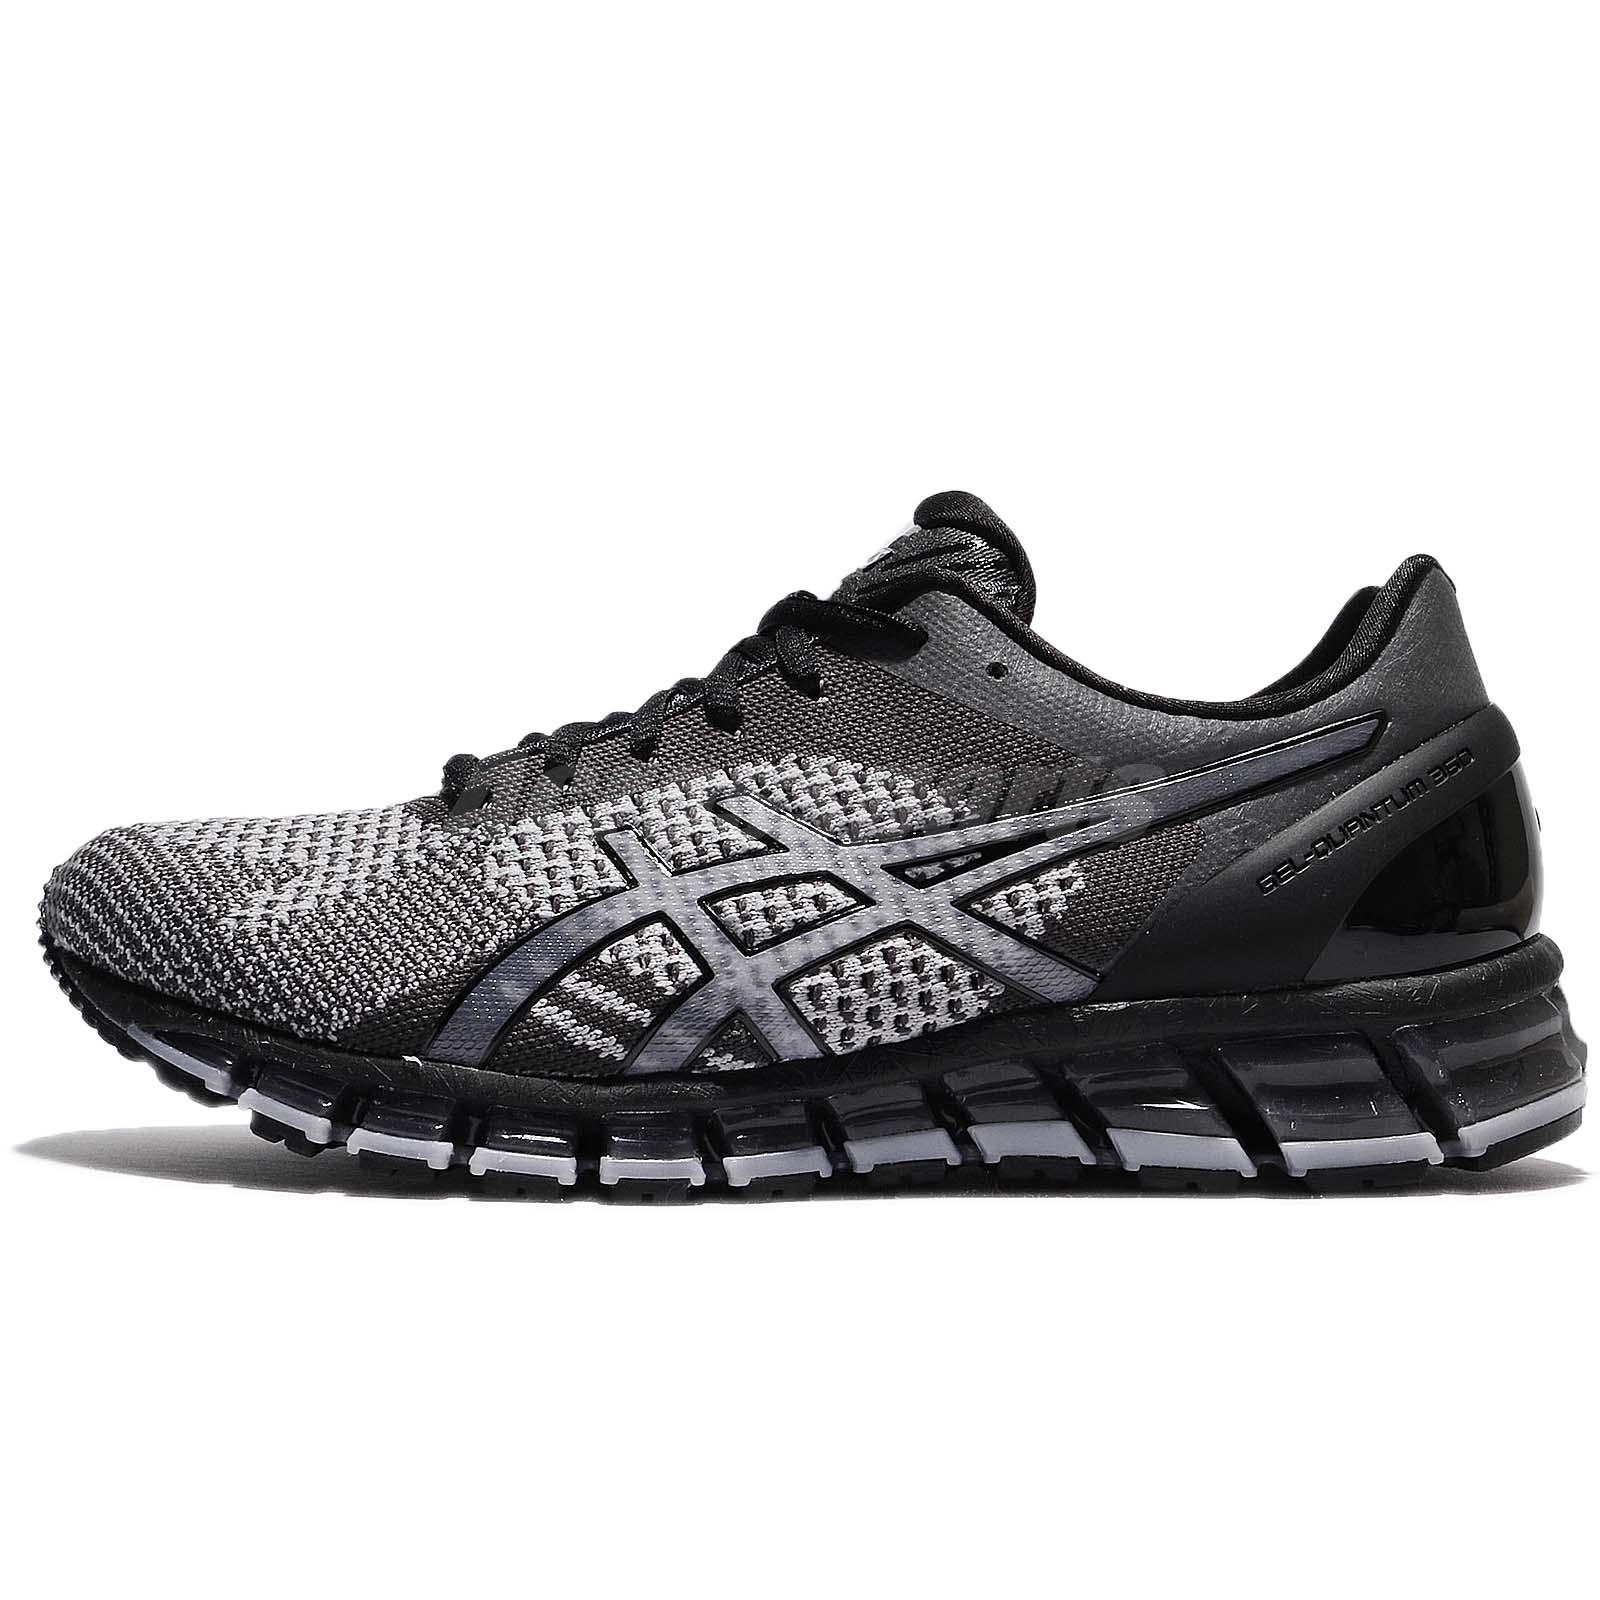 Asics Gel-Quantum 360 Knit Mid Grey Black Men Running Shoes Sneakers  T728N-9697